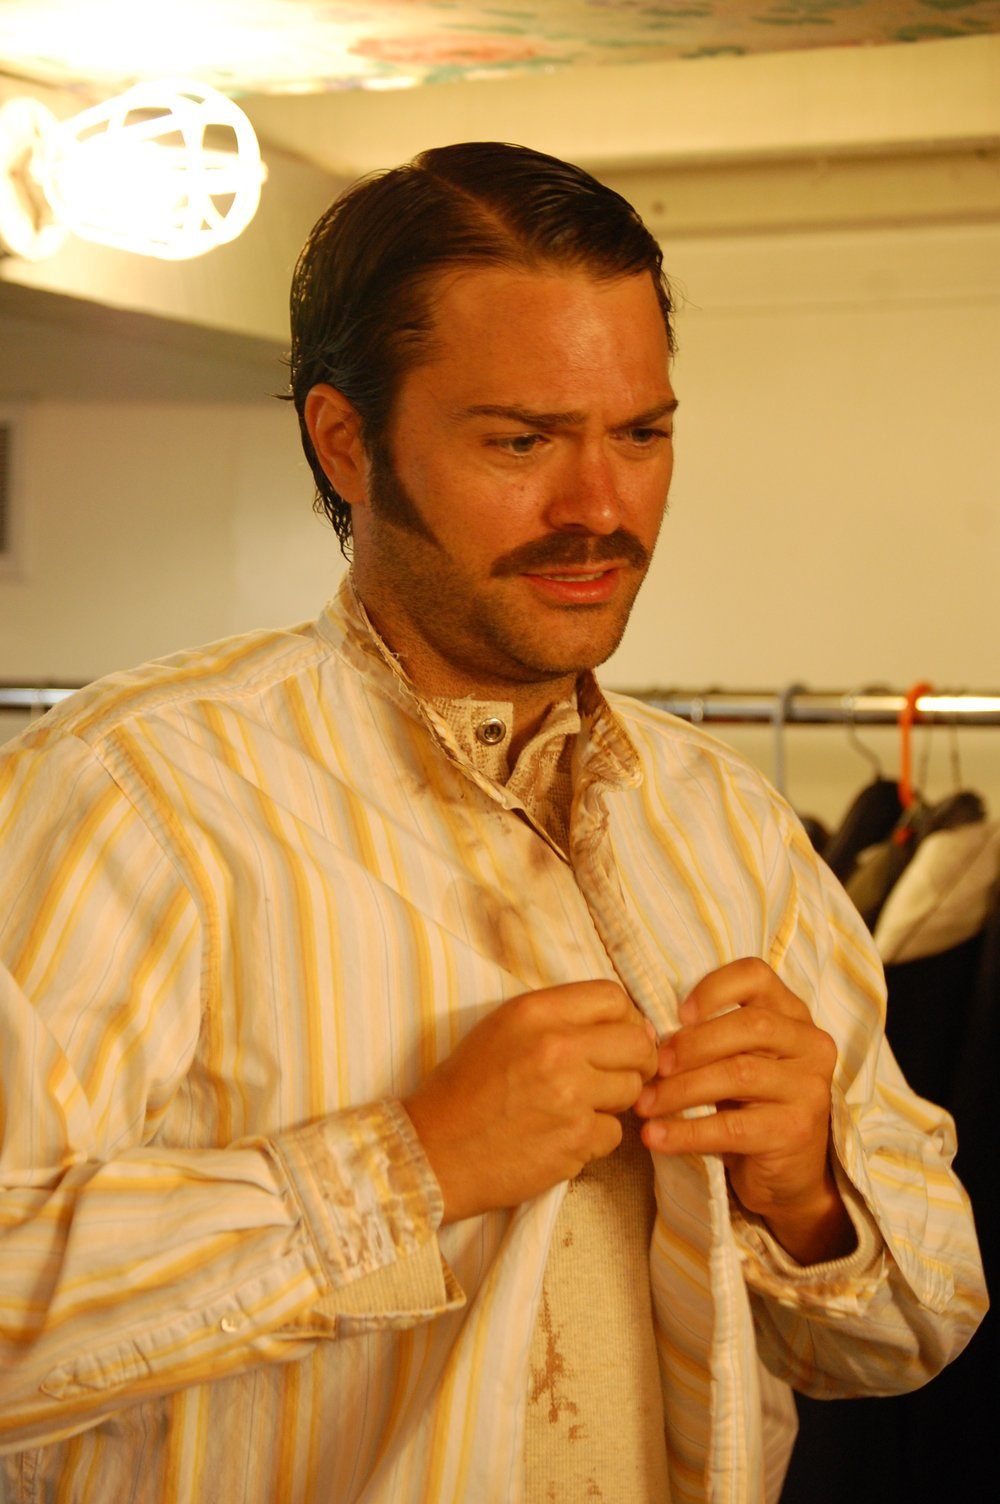 Actor David Folsom backstage during Lascaux Entertainment's 2011 production of  The Elephant Man , directed by John Drouillard.  Photo by Nirvana Kowlessar.